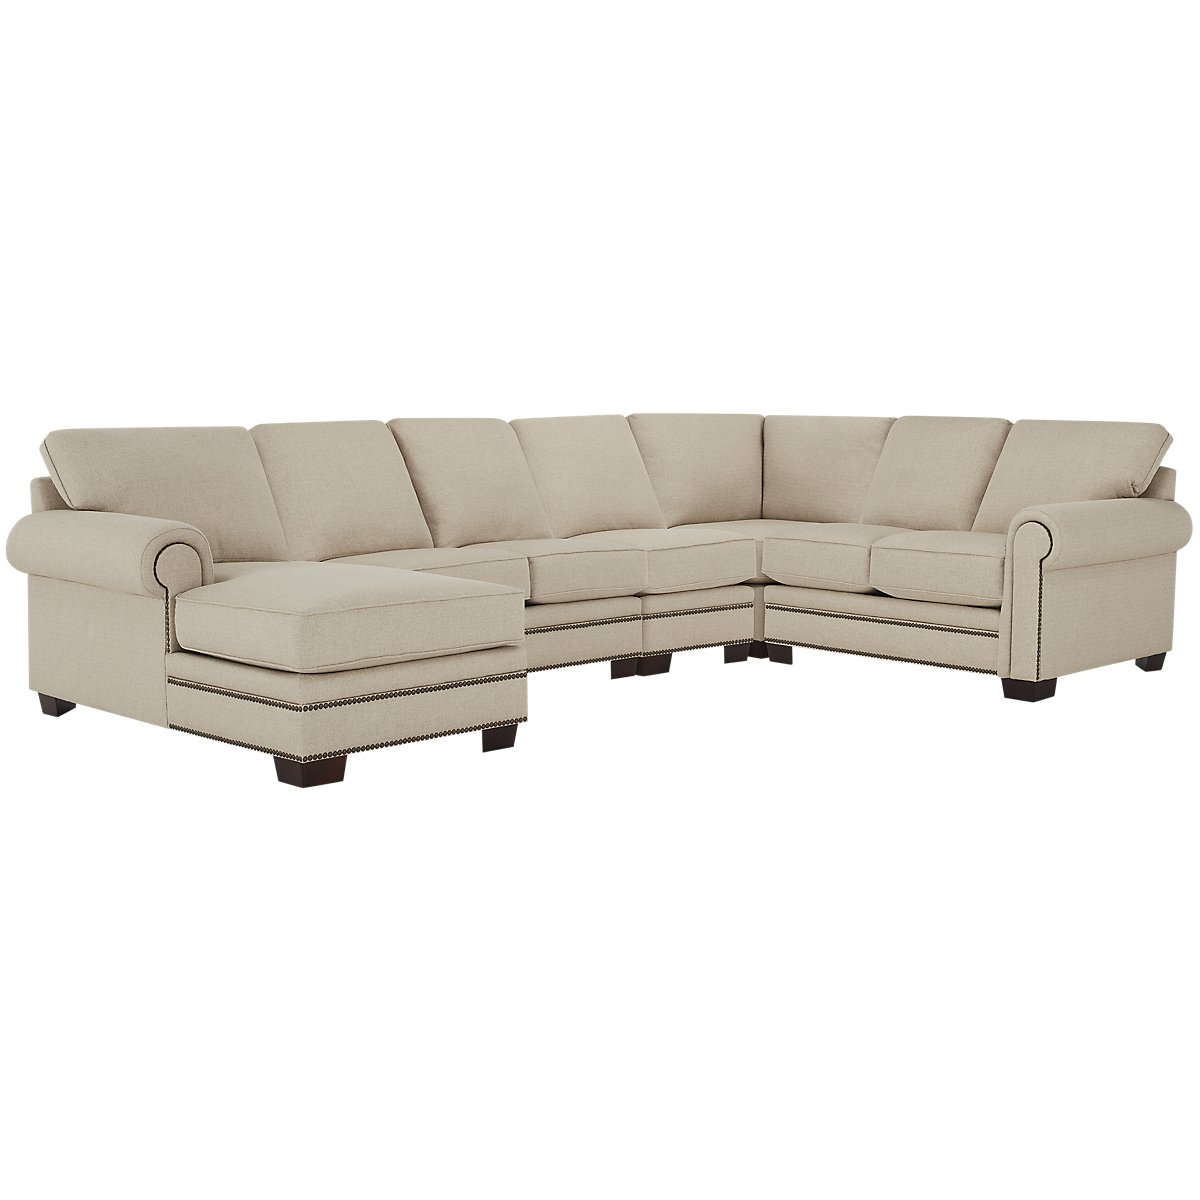 City furniture foster khaki fabric large left chaise for Chaise kaki